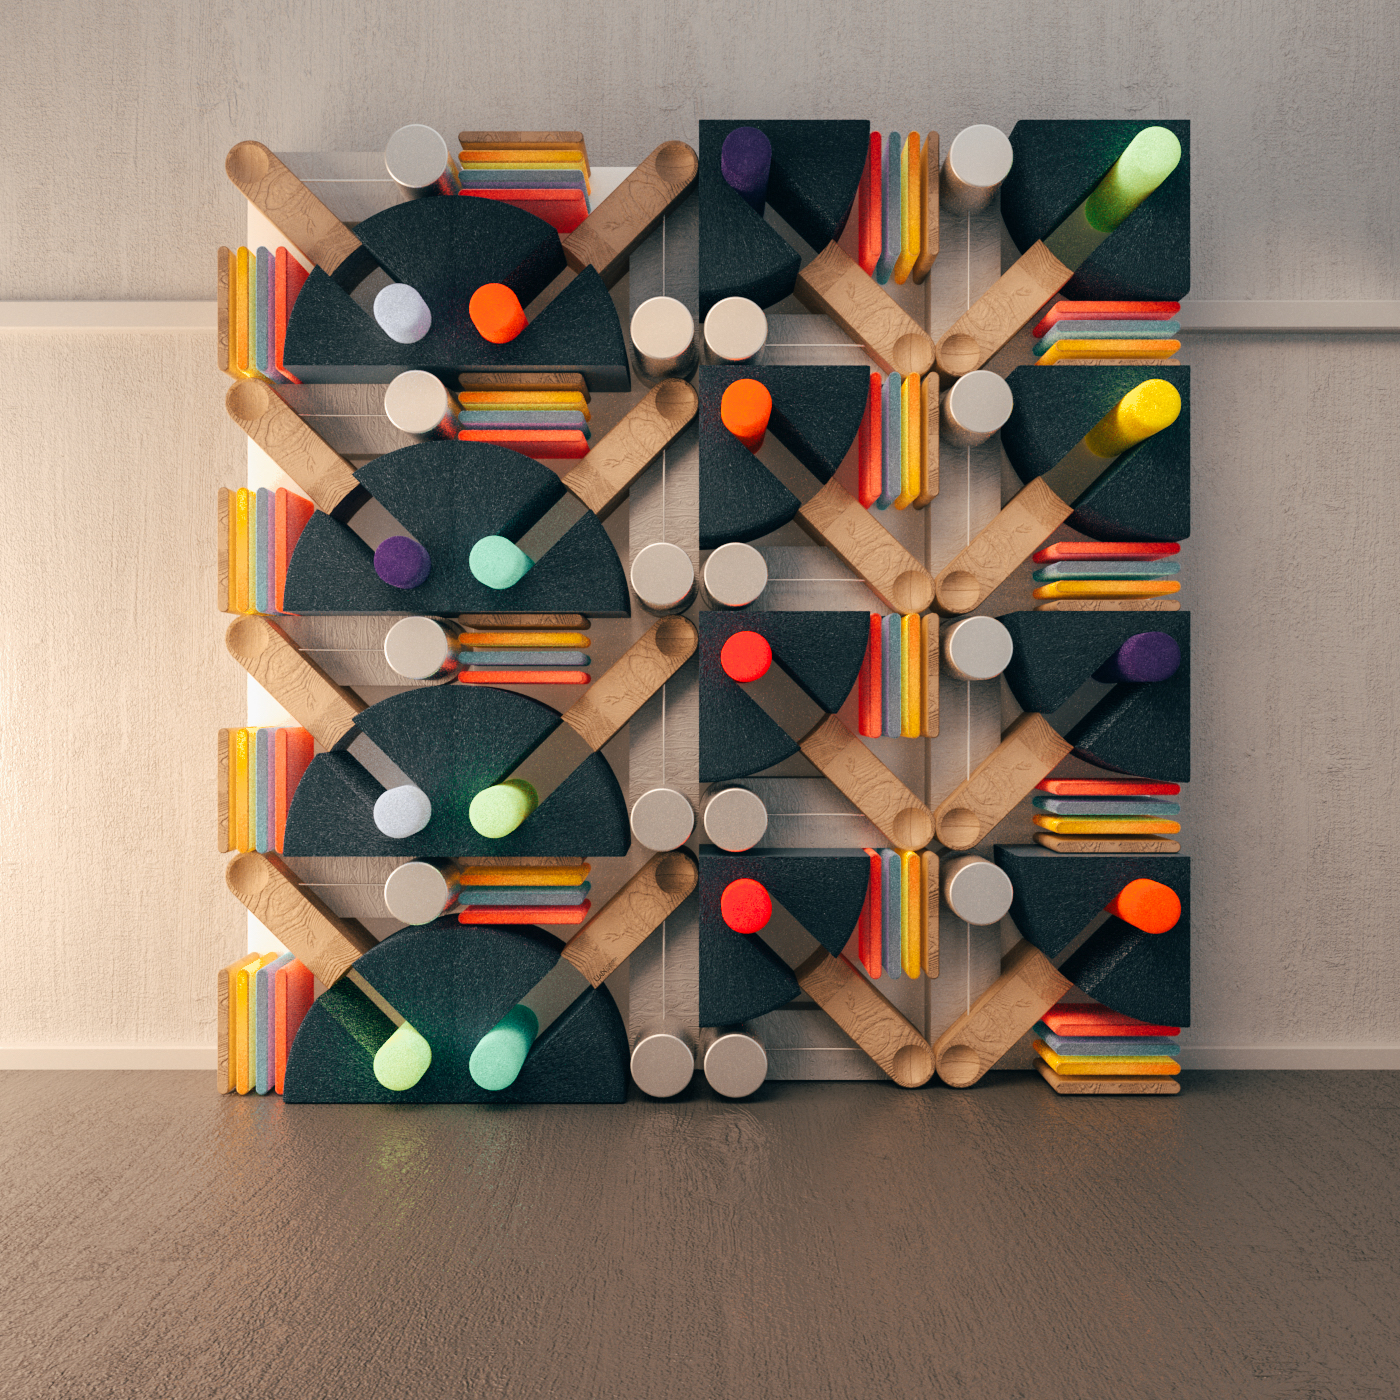 Playful and Colourful Patterns Artworks